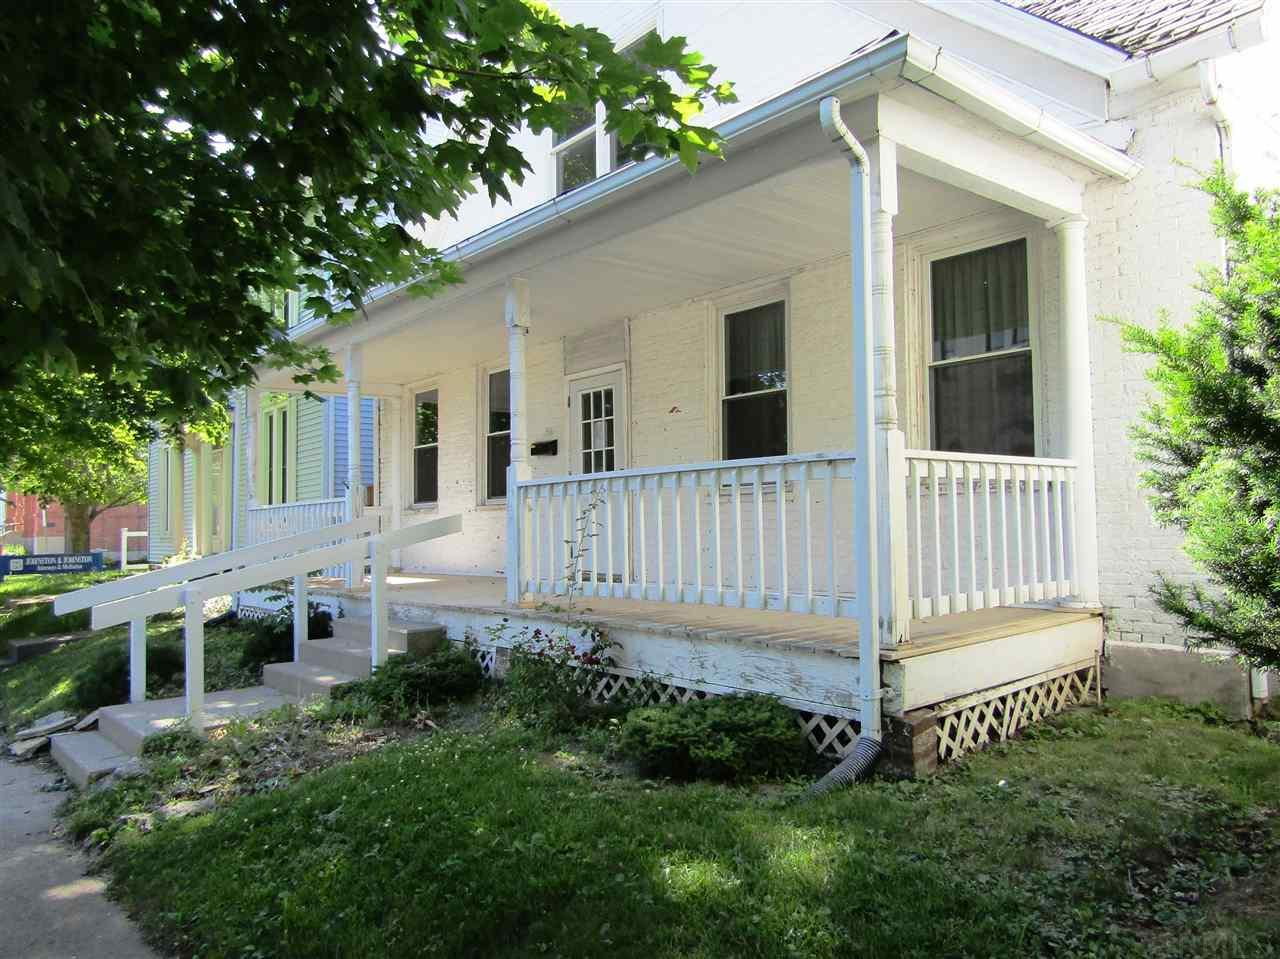 78 W Hill St, Wabash, IN 46992